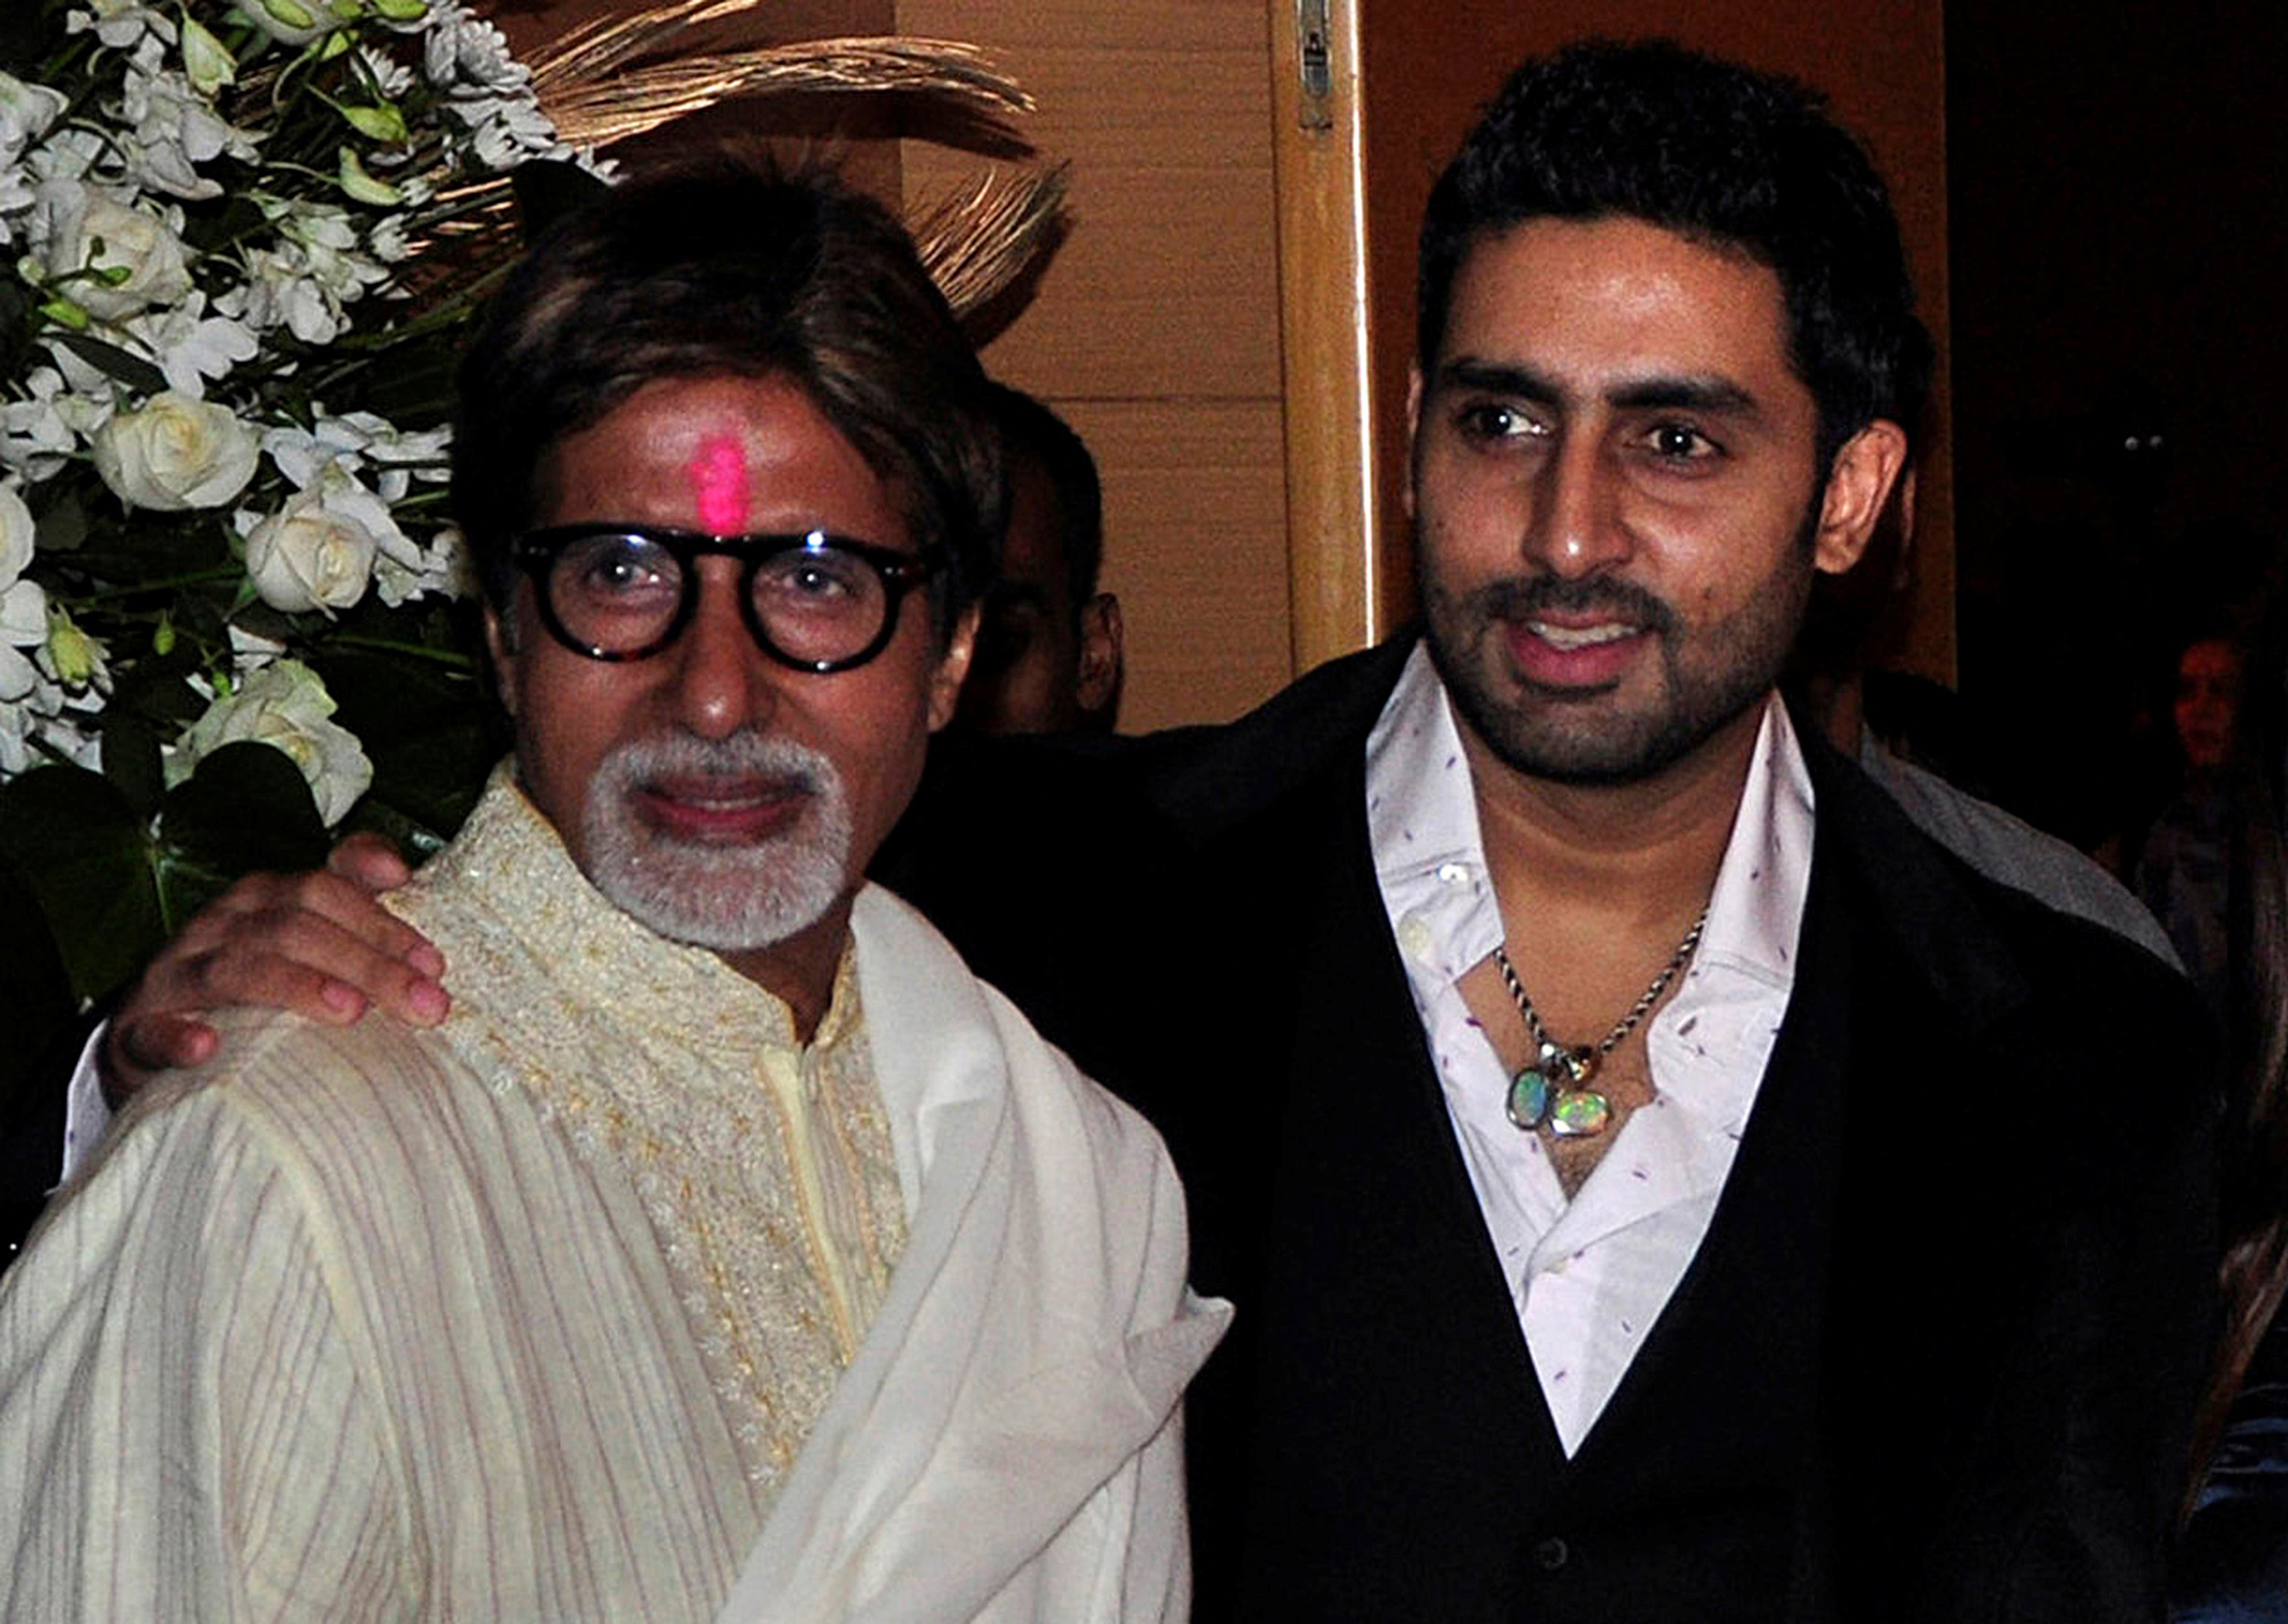 Bollywood actors Amitabh Bachchan, left, and his son Abhishek Bachchan attend a Bollywood party in Mumbai on February 28, 2010.